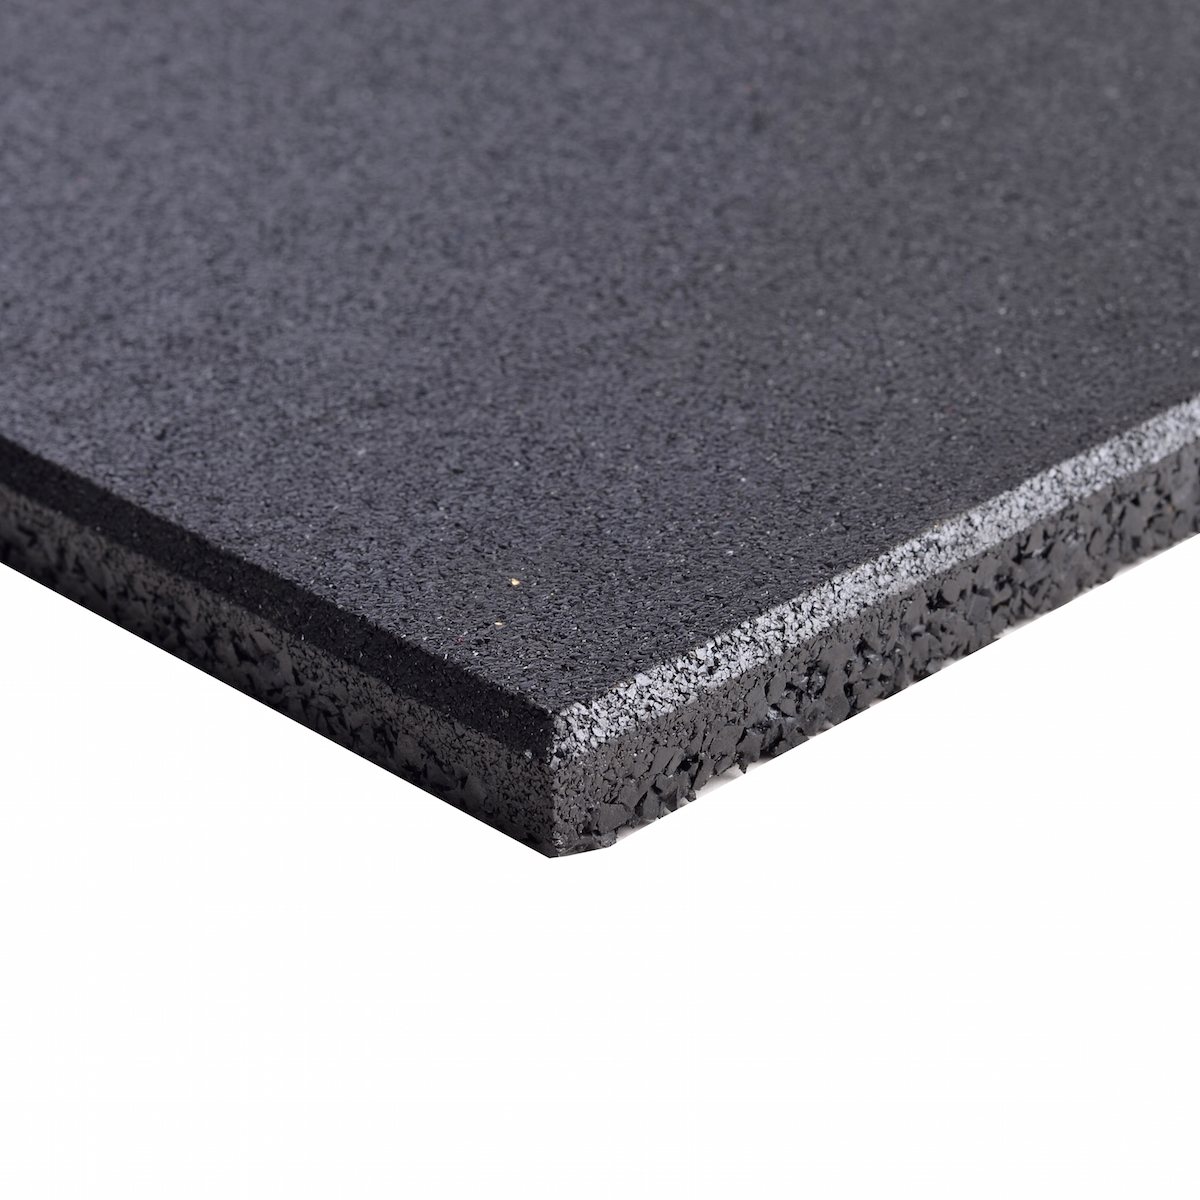 Rubber Mat Suitable For All Environments D8 Fitness